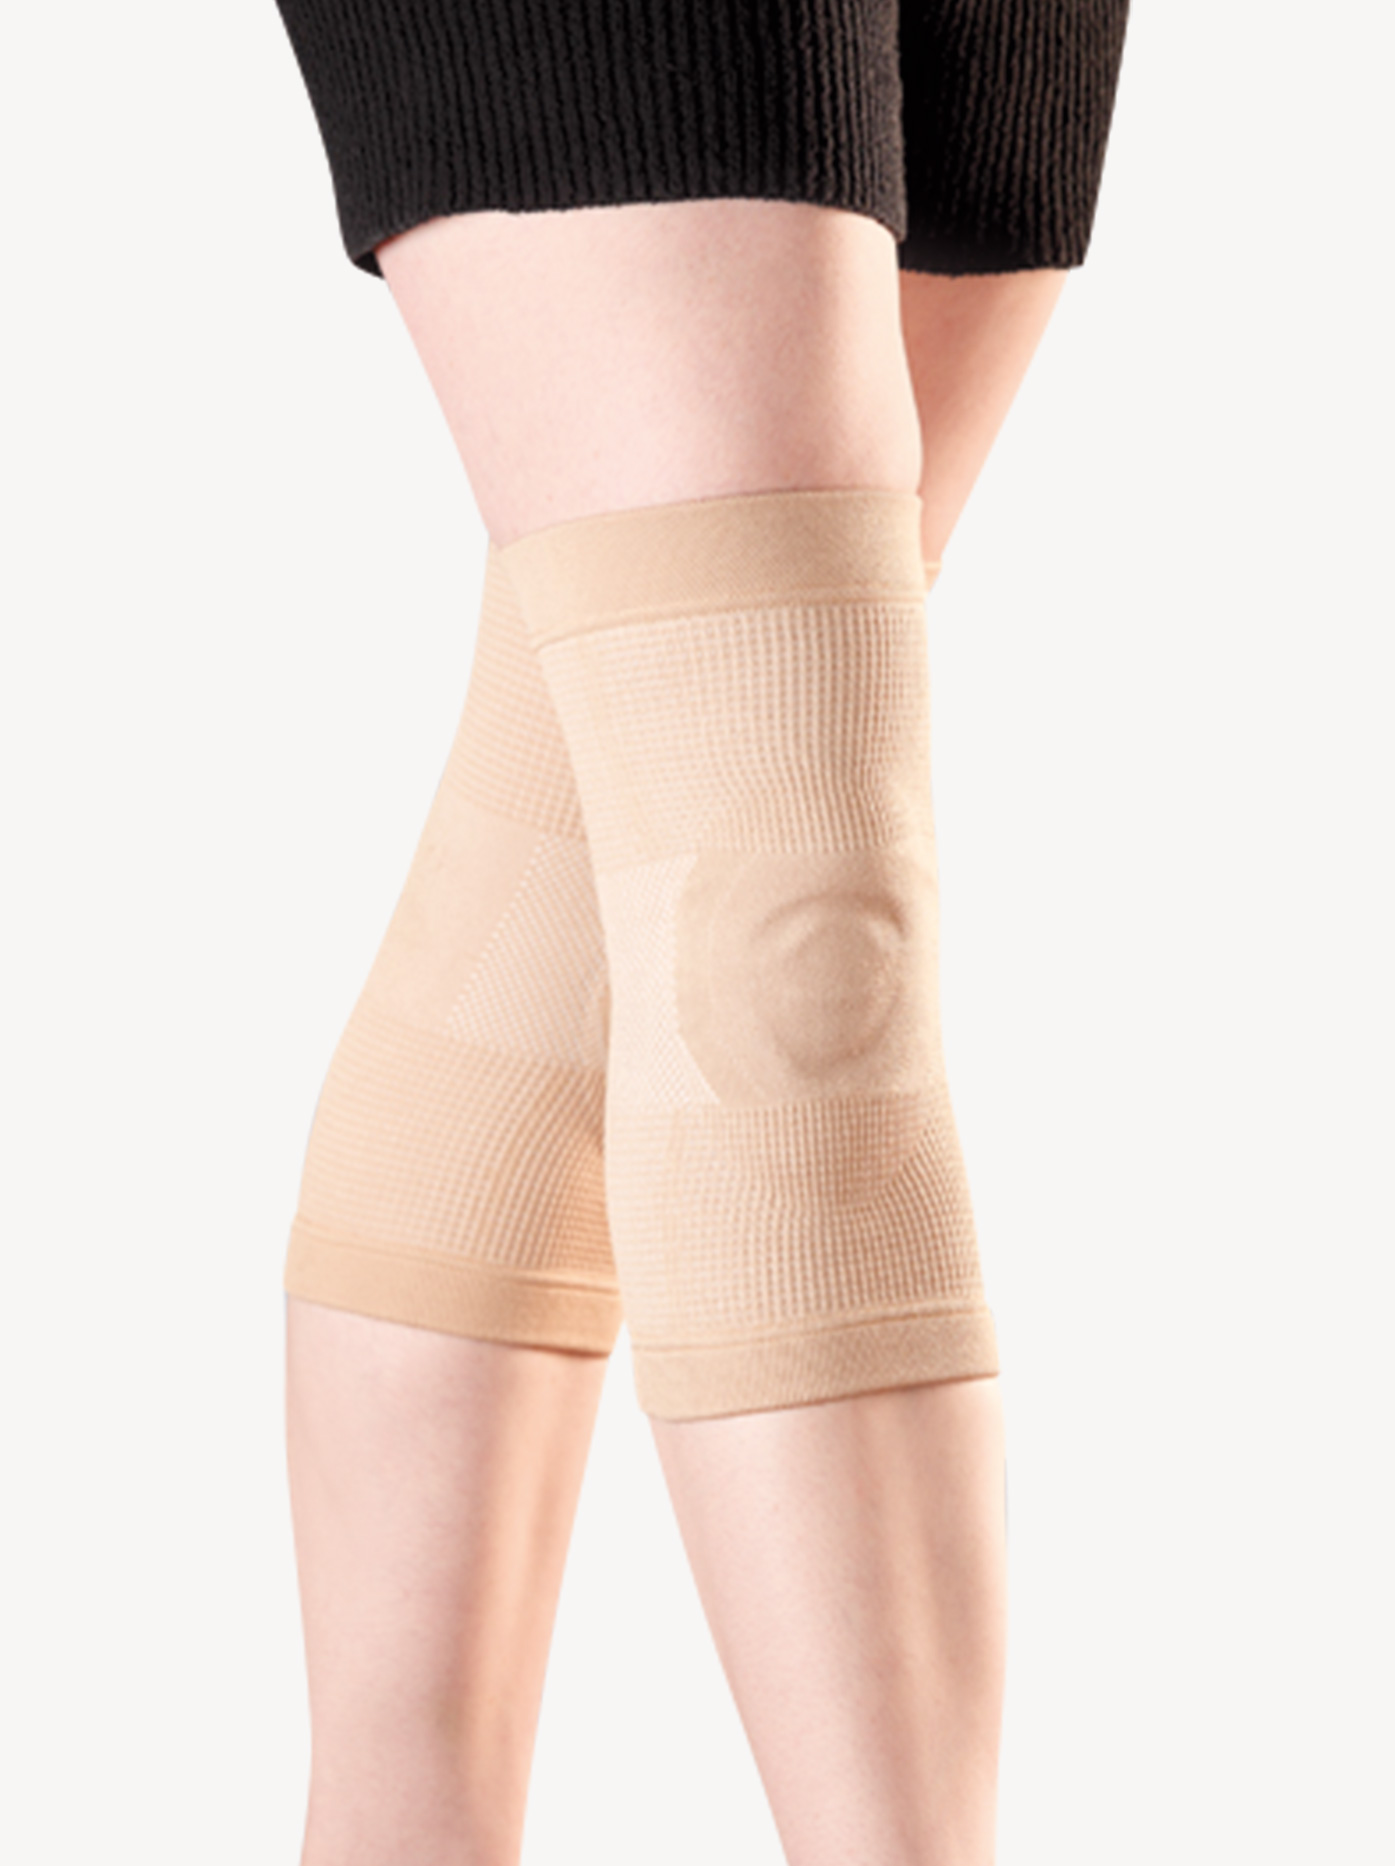 Bunheads Small Knee Support  BH1650